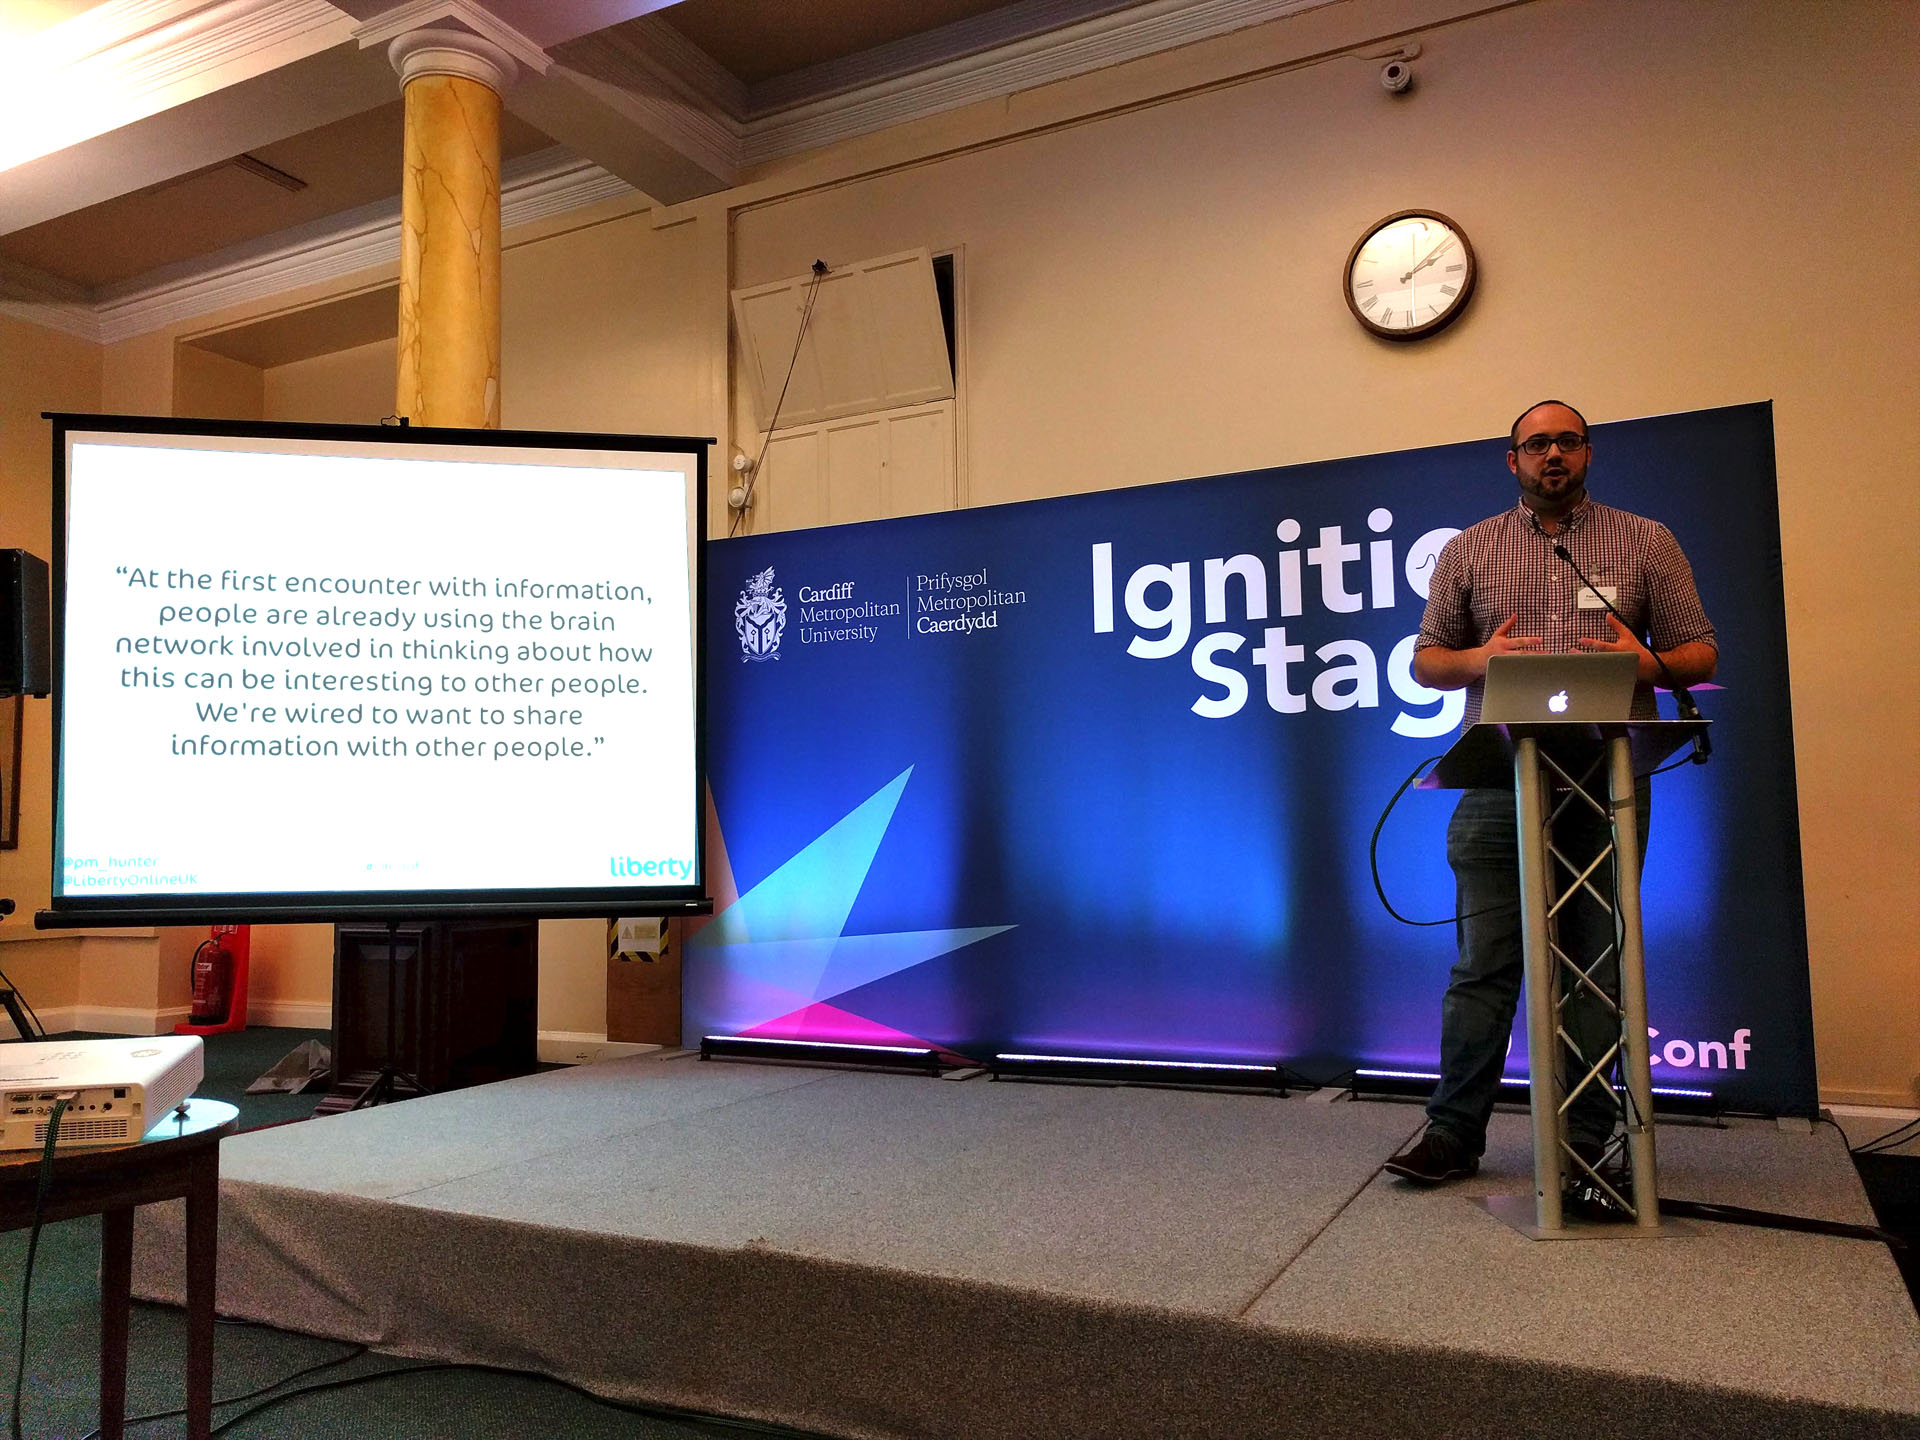 At #OiConf in #cardiff yesterday #neuroscience and #neuromarketing were debated again, presented here by Paul Hunter of @LibertyOnlineUK https://t.co/NmNkXtlaeM